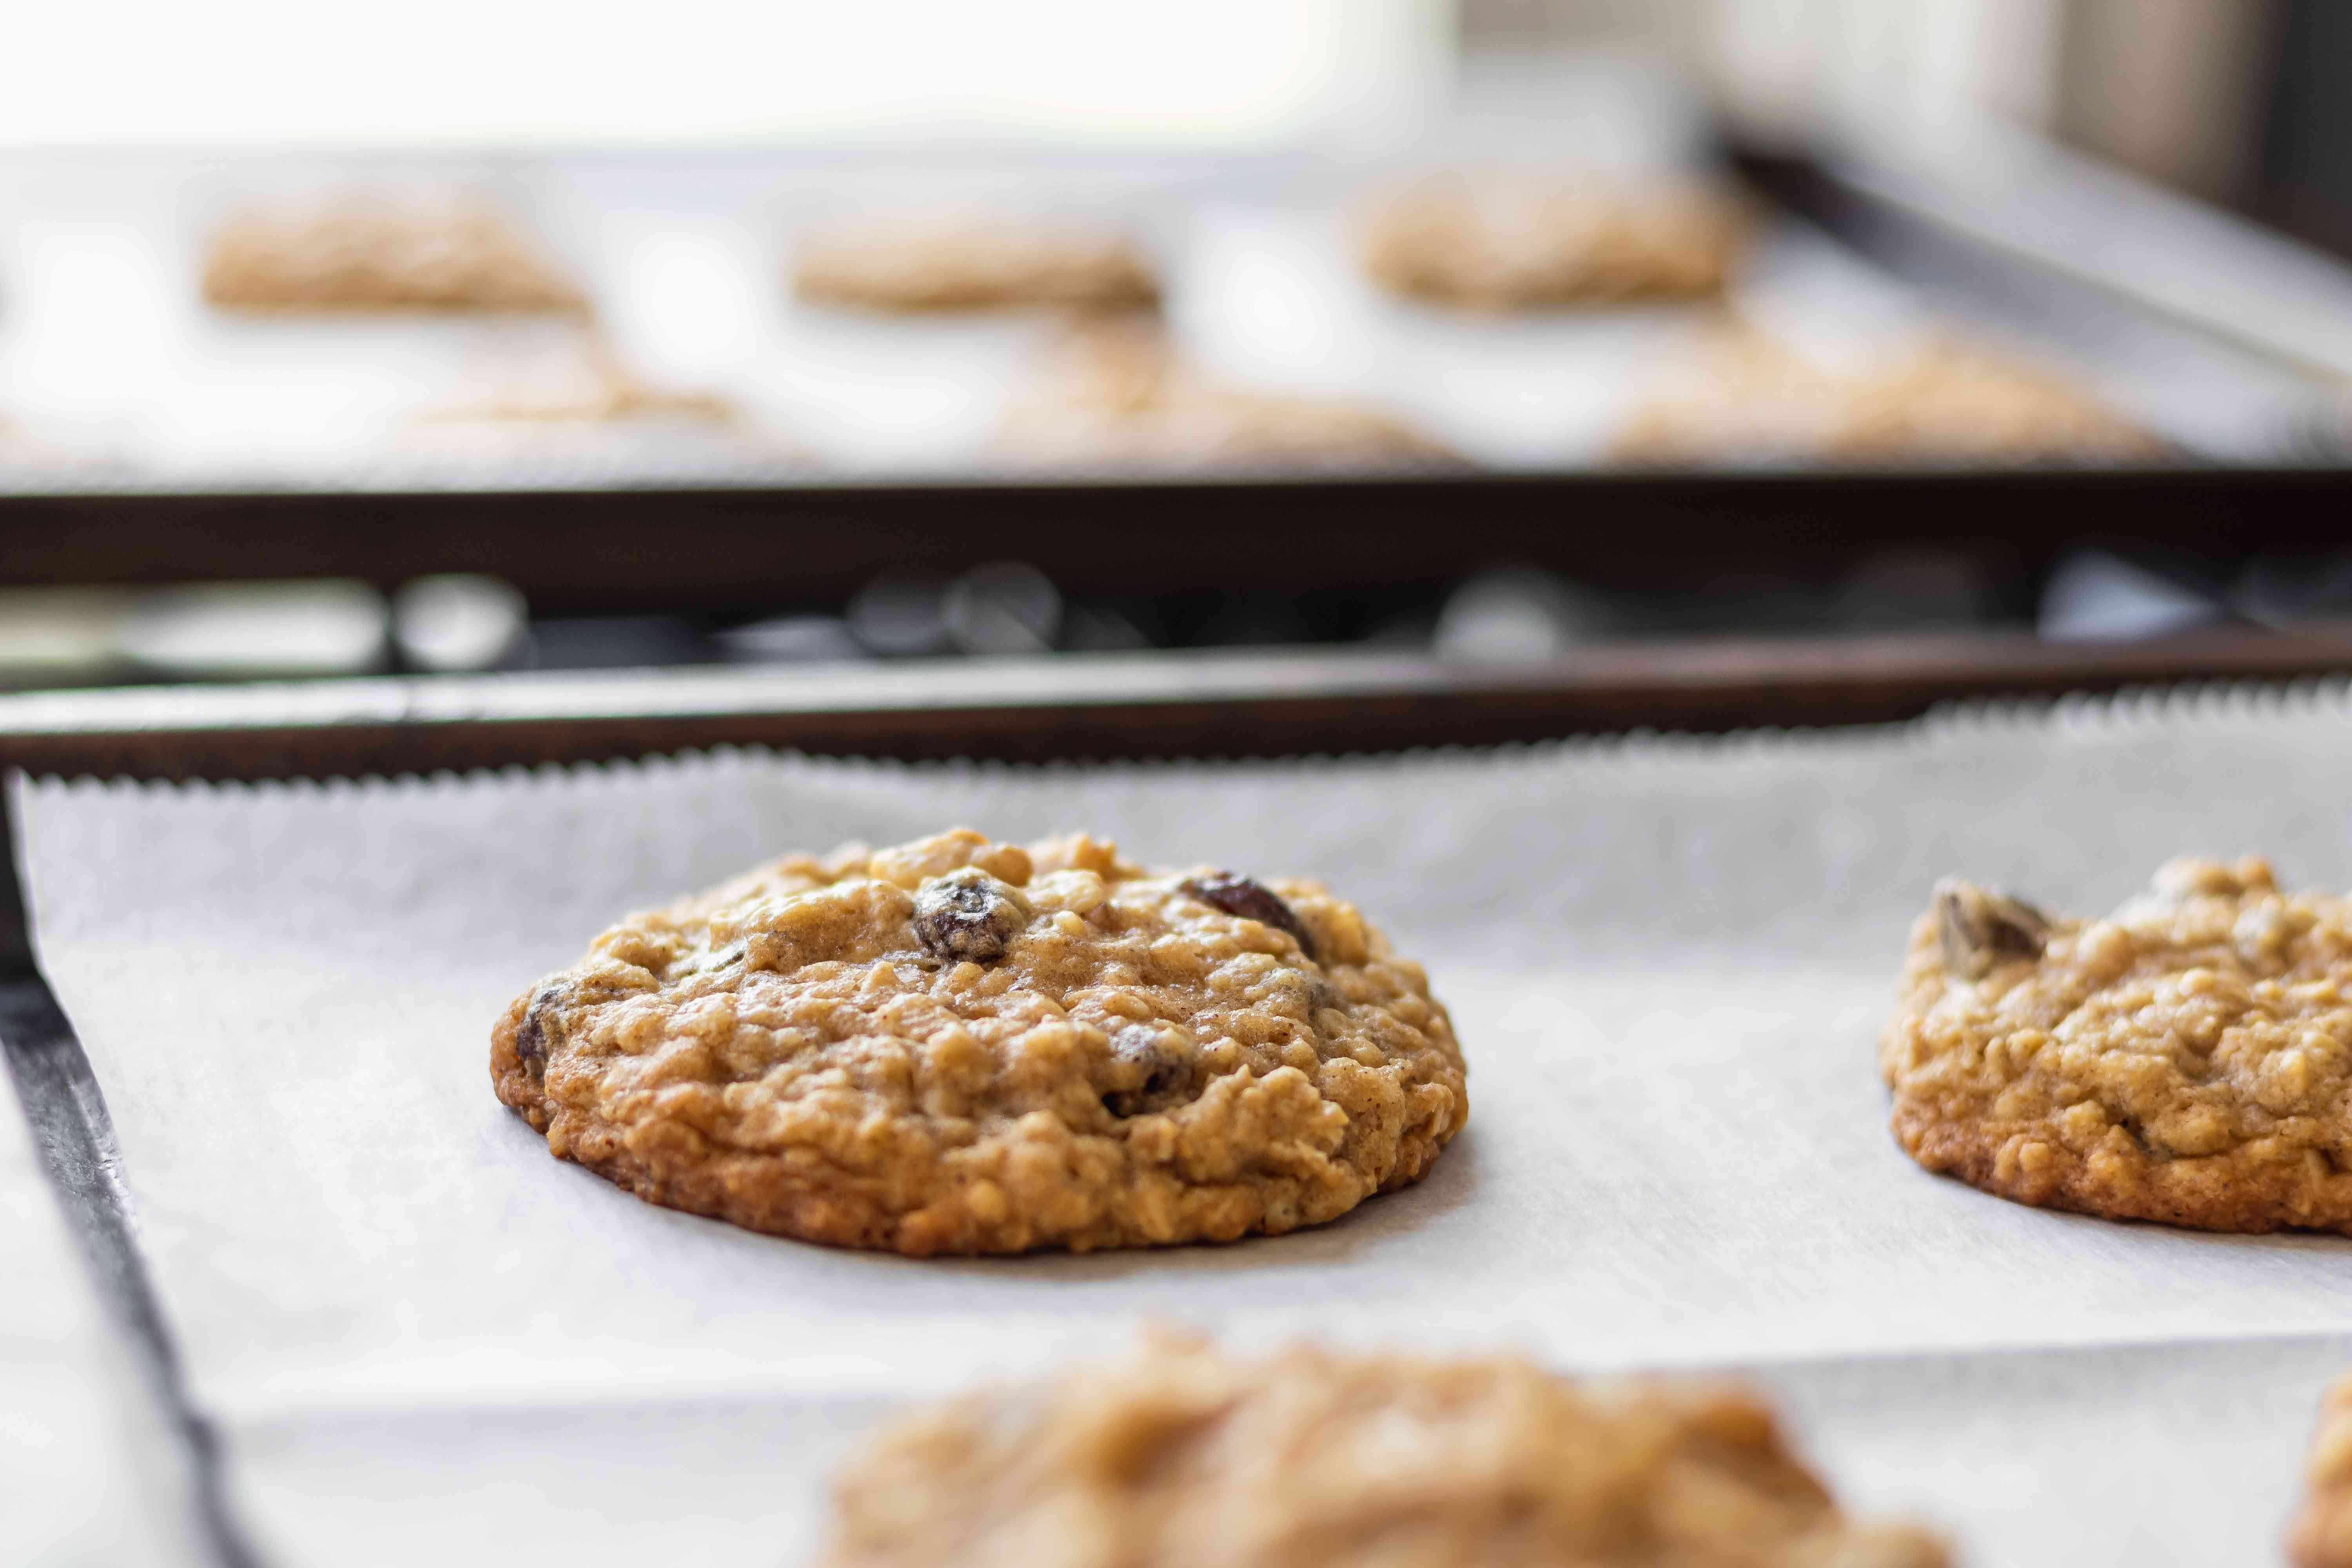 Side view of baked Oatmeal Raisin Cookies on a parchment lined baking sheet.